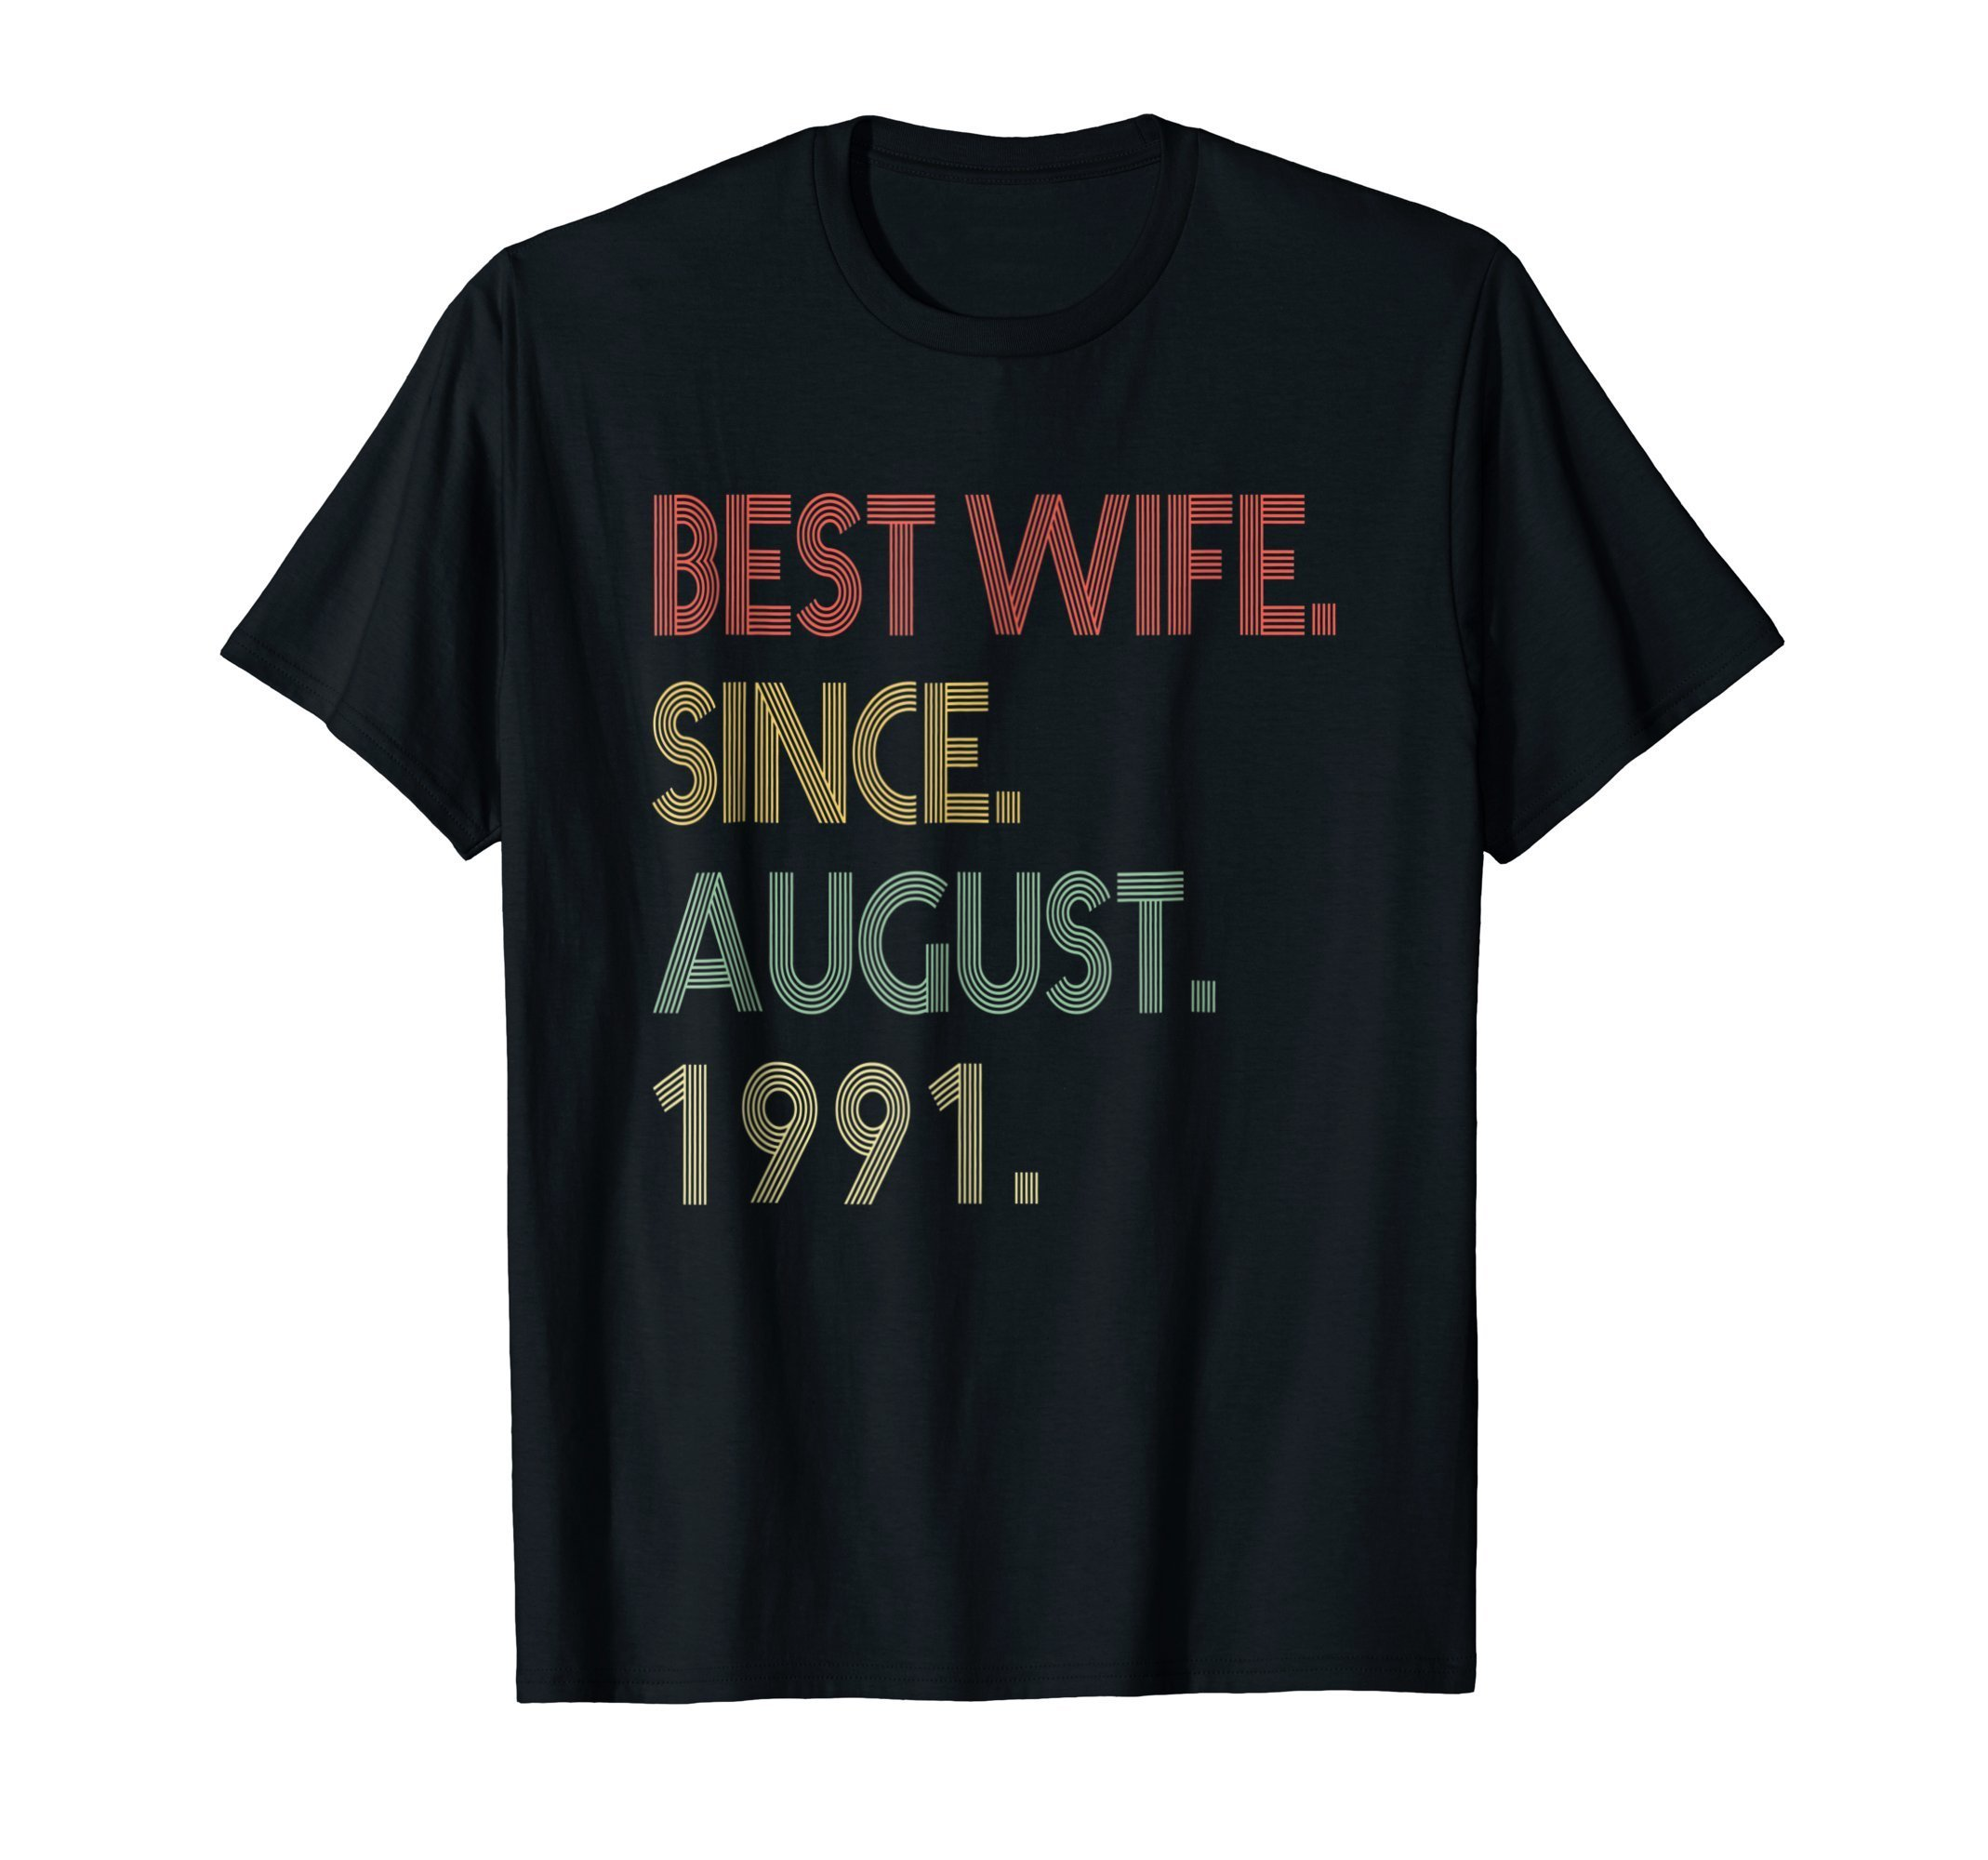 Best Wife Since August 1991 27th Wedding Anniversary T-Shirt